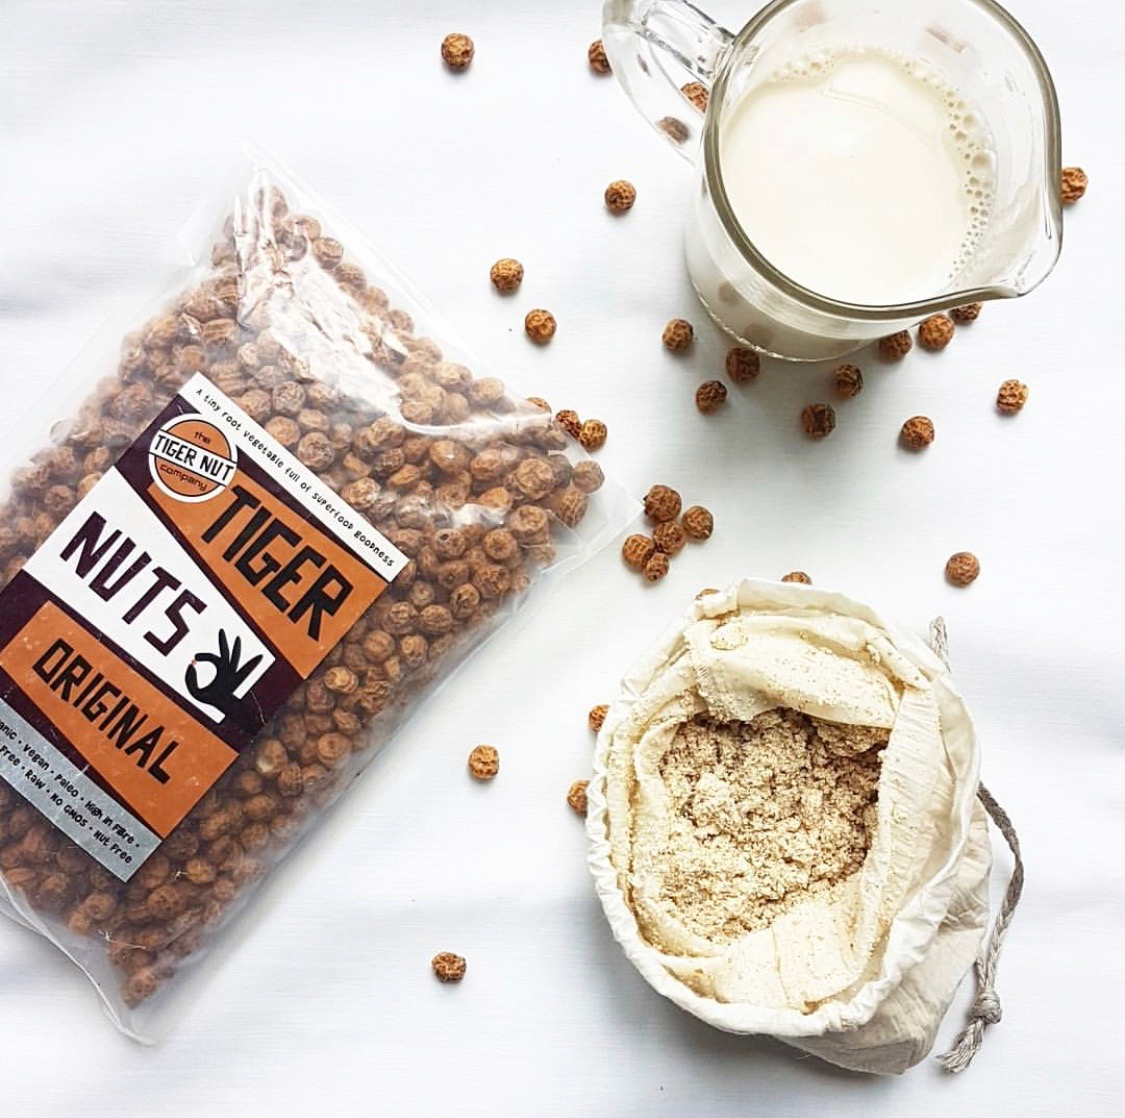 Enter our Recipe Competition to Win a Tiger Nut Milk Kit!